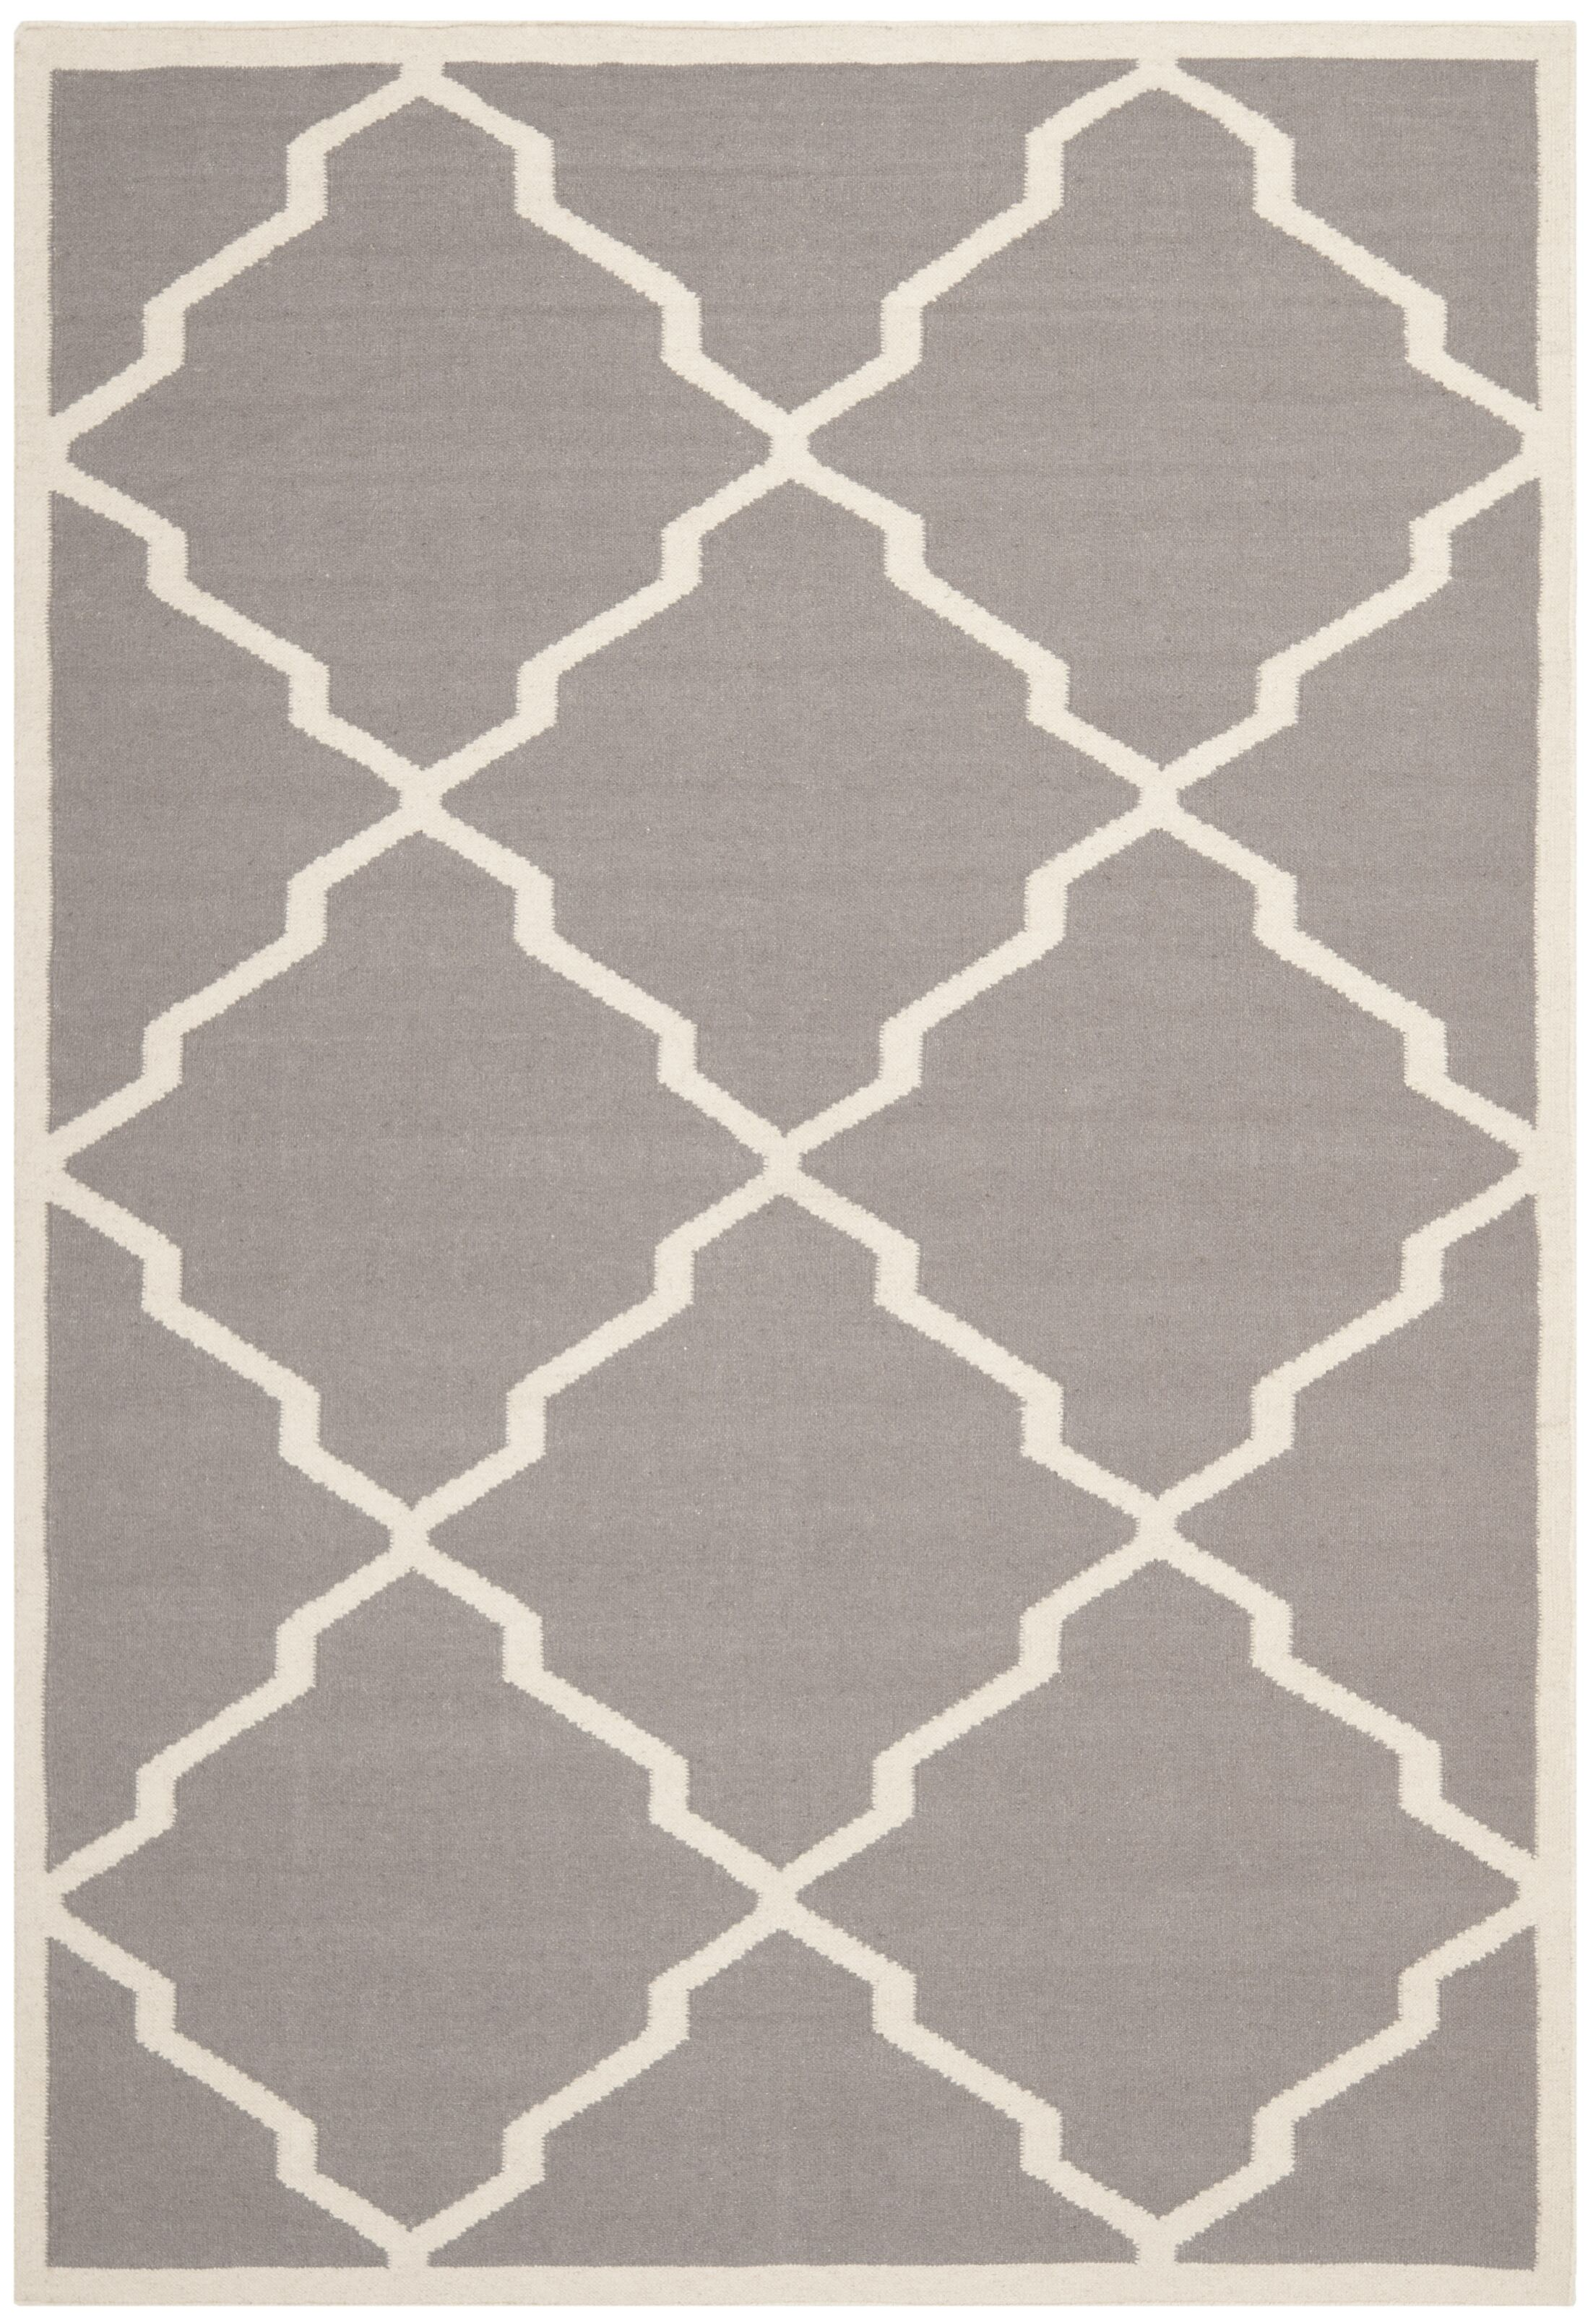 Brambach Hand-Woven Wool Grey/Ivory Area Rug Rug Size: Rectangle 9' x 12'